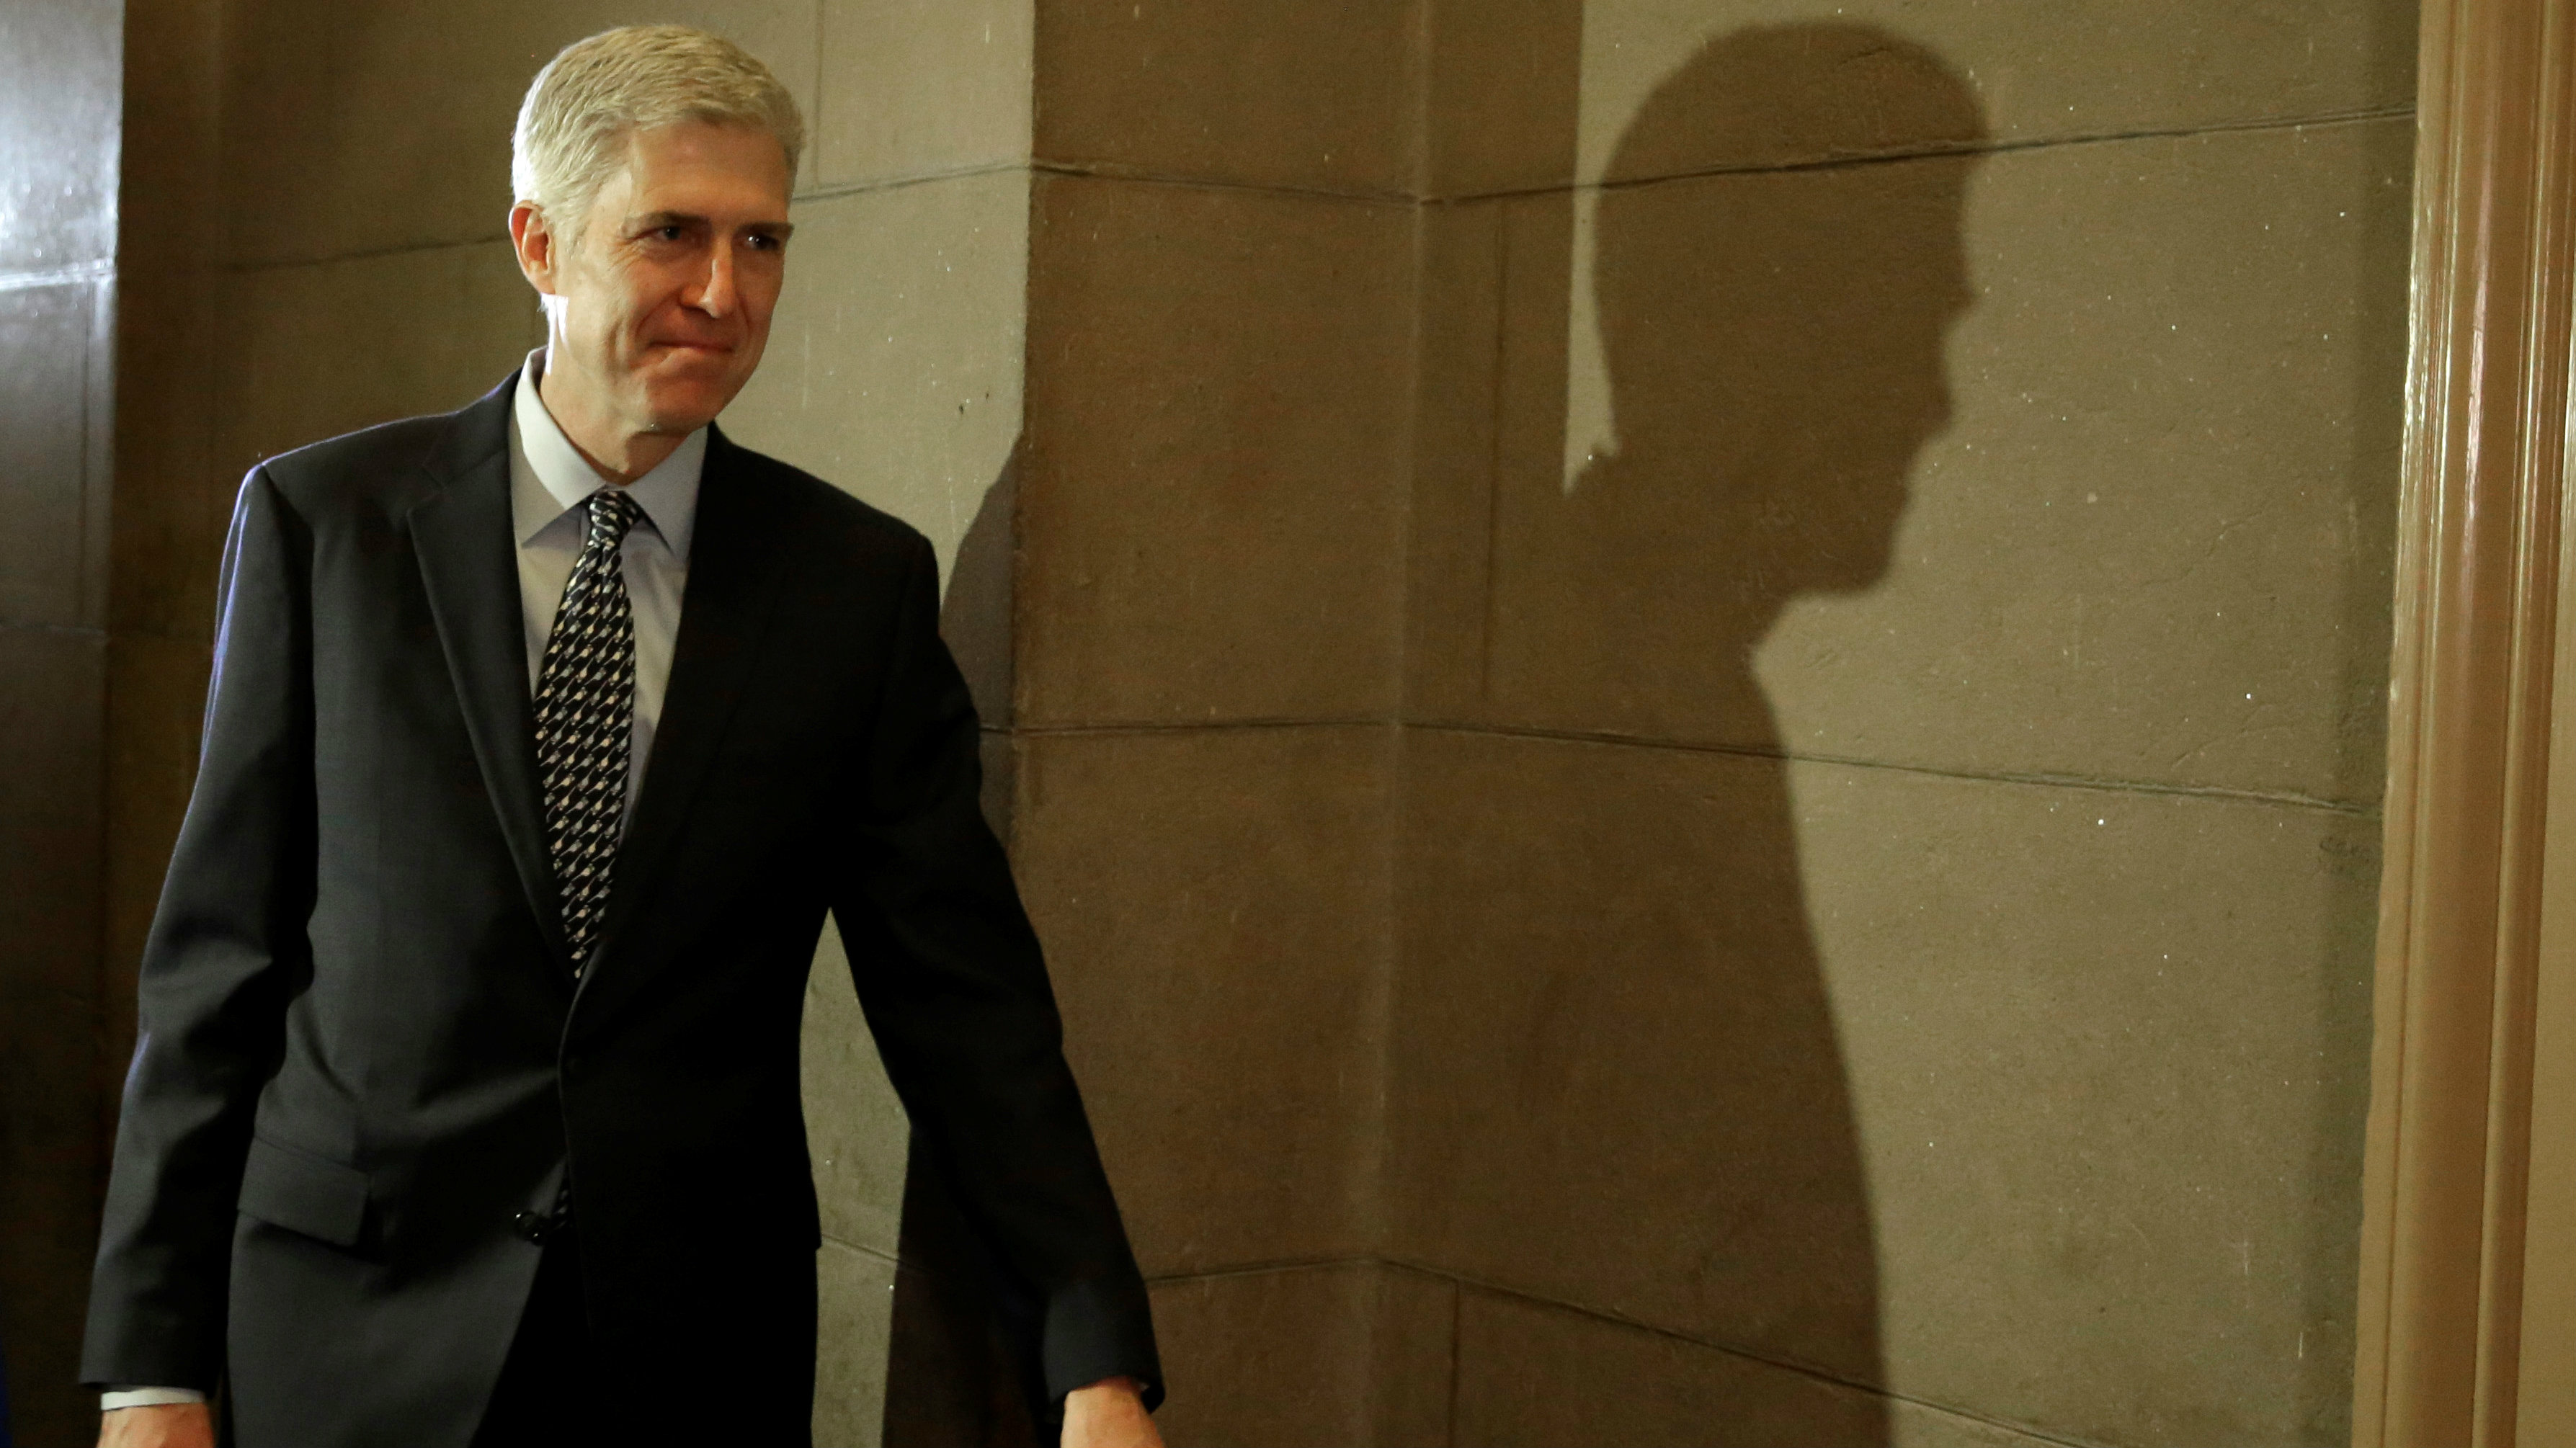 U.S. Supreme Court nominee Judge Neil Gorsuch arrives for a meeting with Senator Ted Cruz (R-TX) on Capitol Hill in Washington, U.S., February 2, 2017.